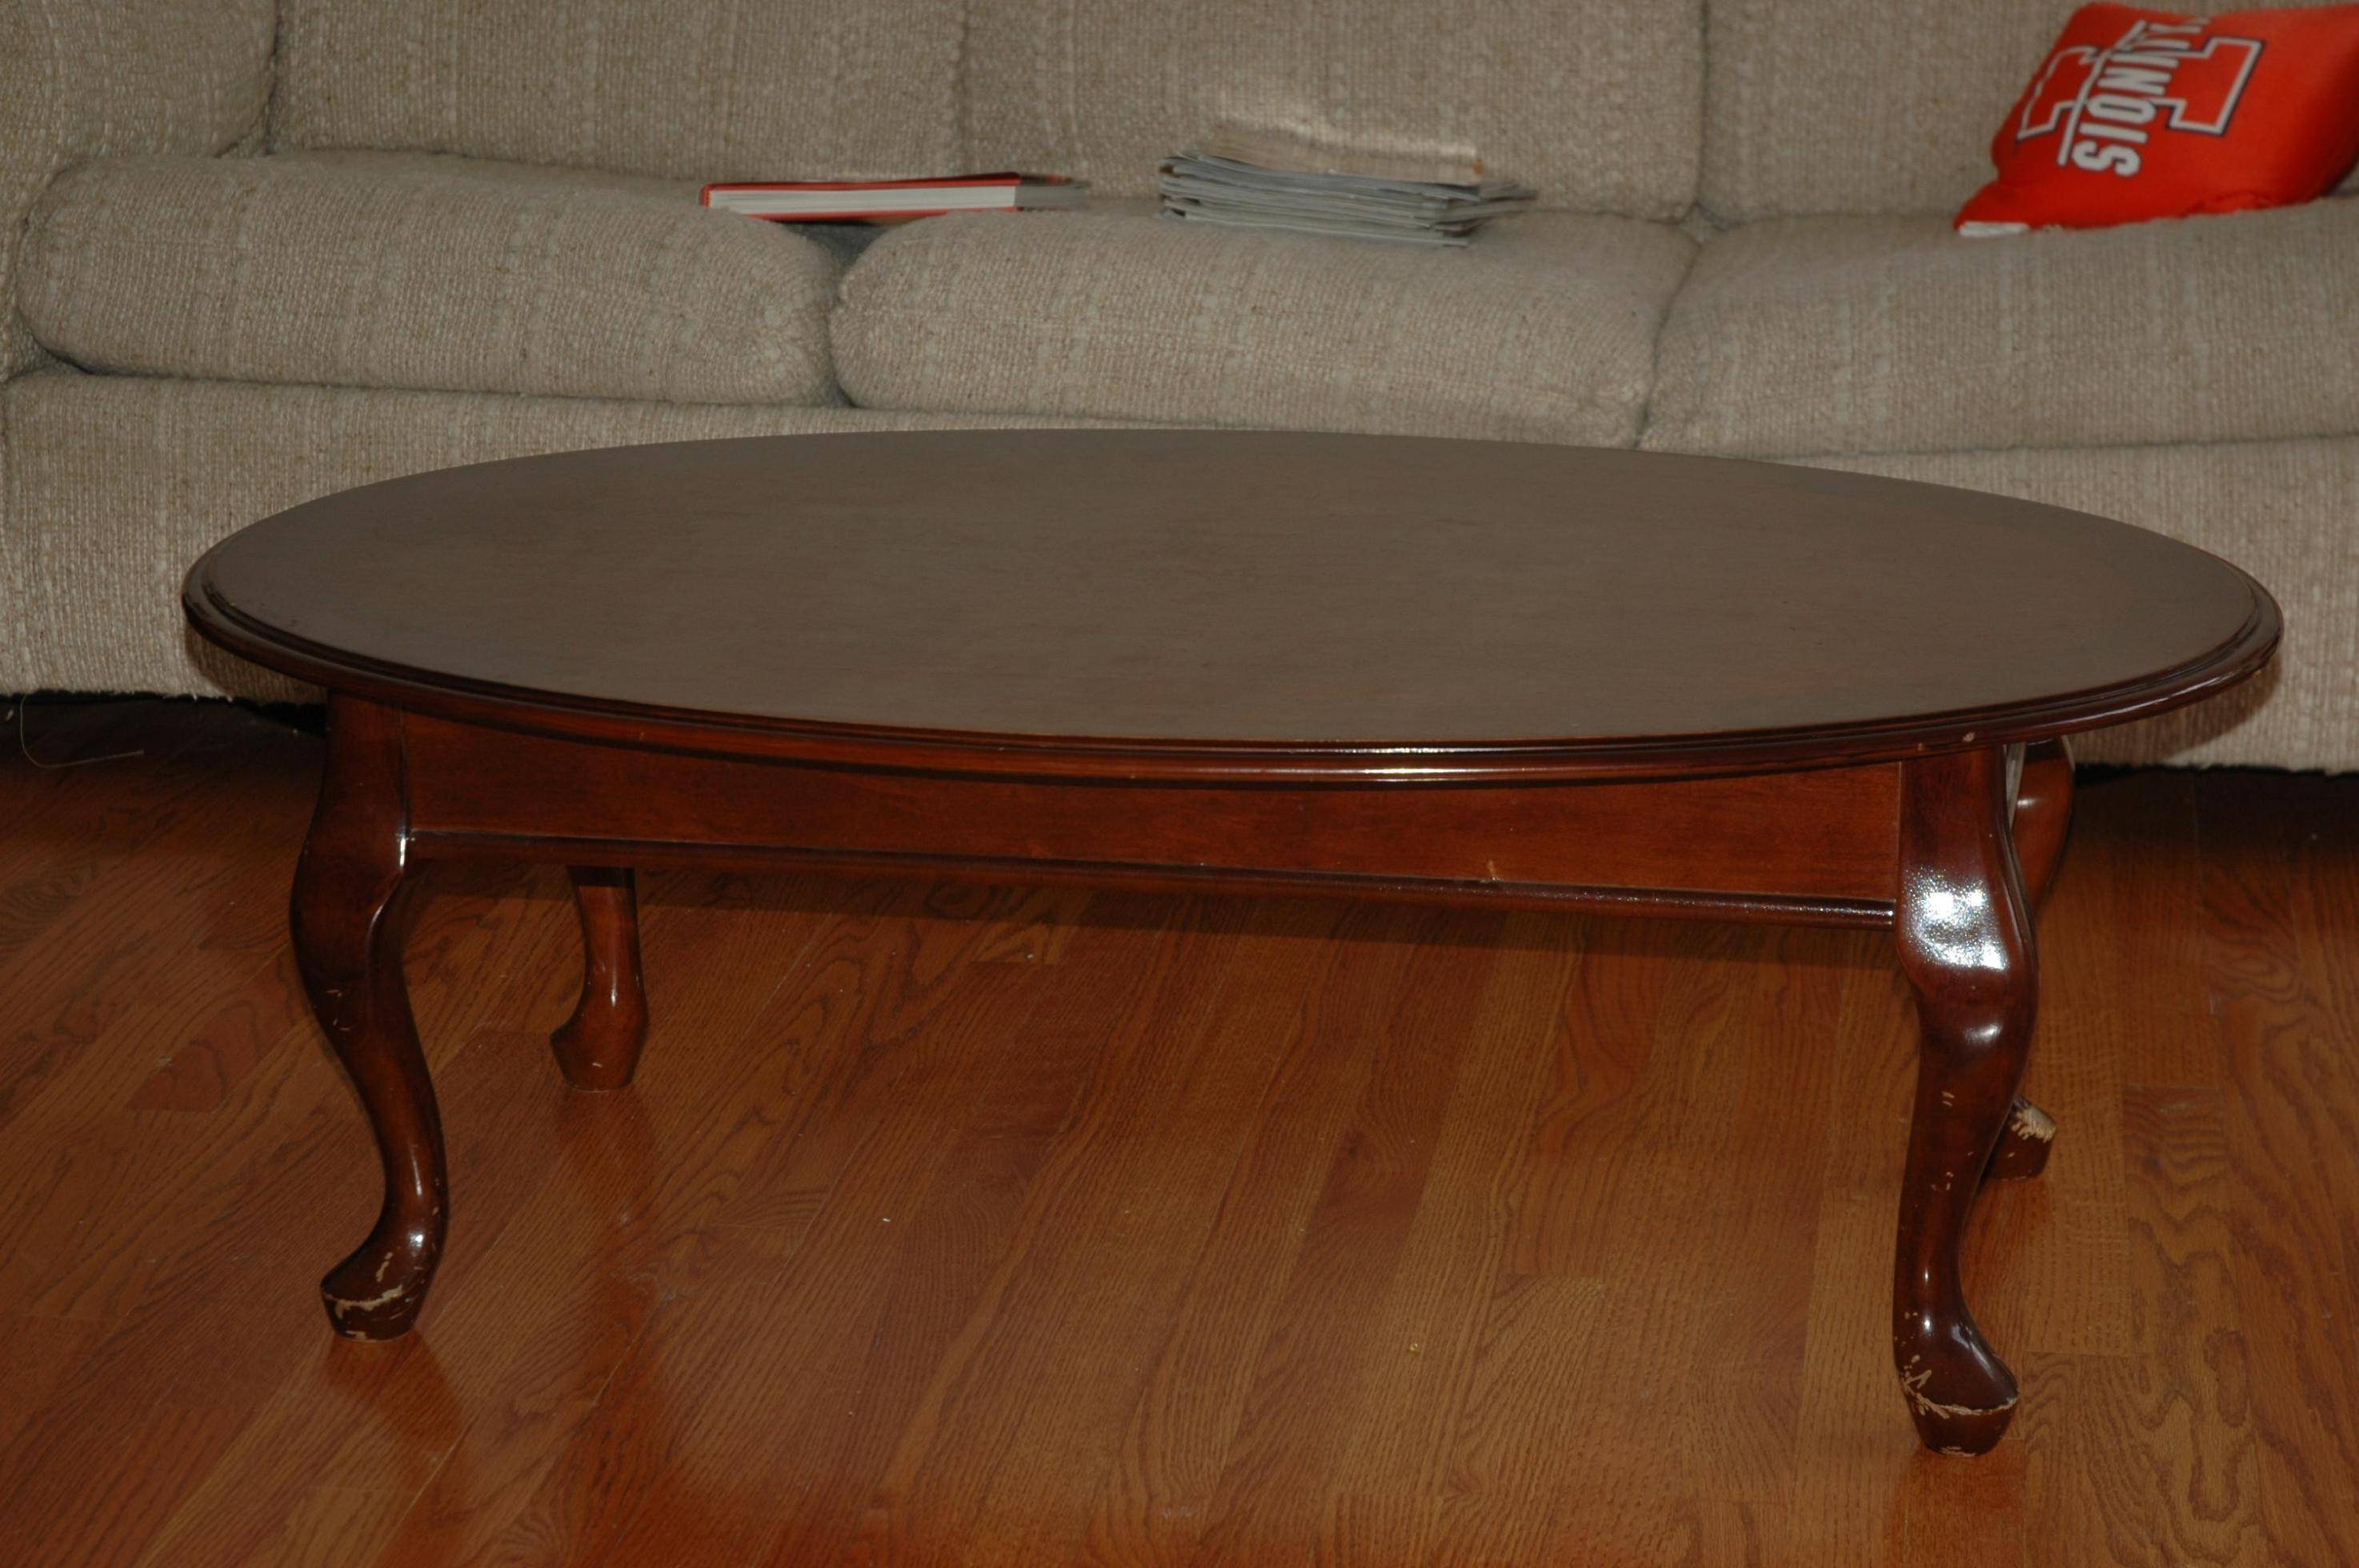 Coffee Table: Popular Oval Wood Coffee Table Designs Oval Cherry pertaining to Oval Wood Coffee Tables (Image 7 of 30)